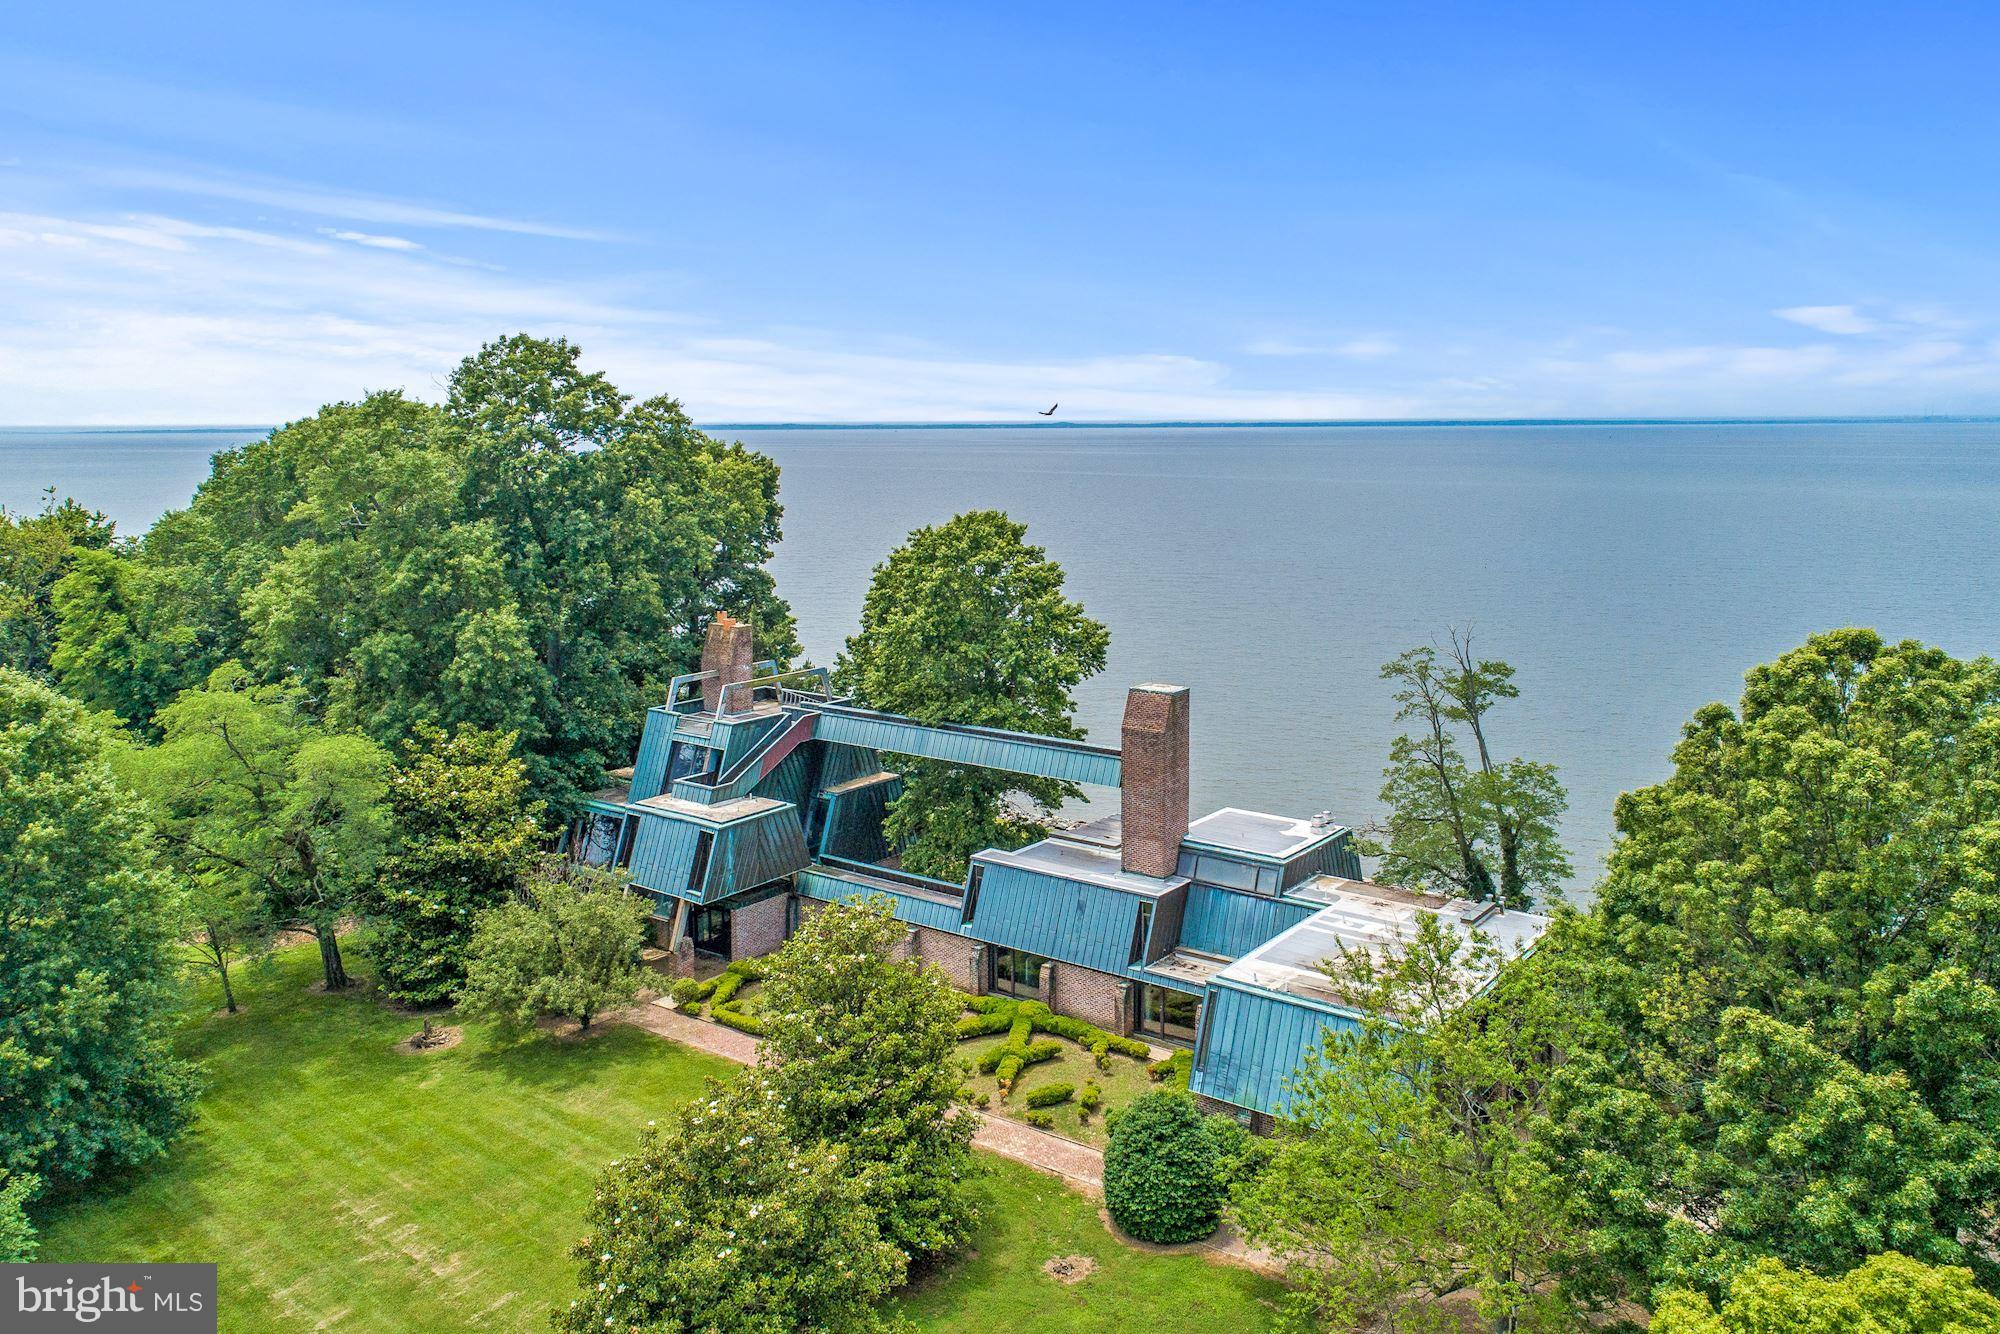 NEW PRICE! 200K PRICE ADJUSTMENT! Amazing opportunity. Located on the Chesapeake Bay, Rock Hall Stud is a 240 acre property featuring a 12,520 SF unique, waterfront main residence built in 1986, swimming pool, private beach, stud farm with facilities, and beautiful private and sub-dividable acreage. An outside observation deck that spans the entire length of the home's copper roof boasts panoramic views of Bay Bridge and Baltimore skyline.